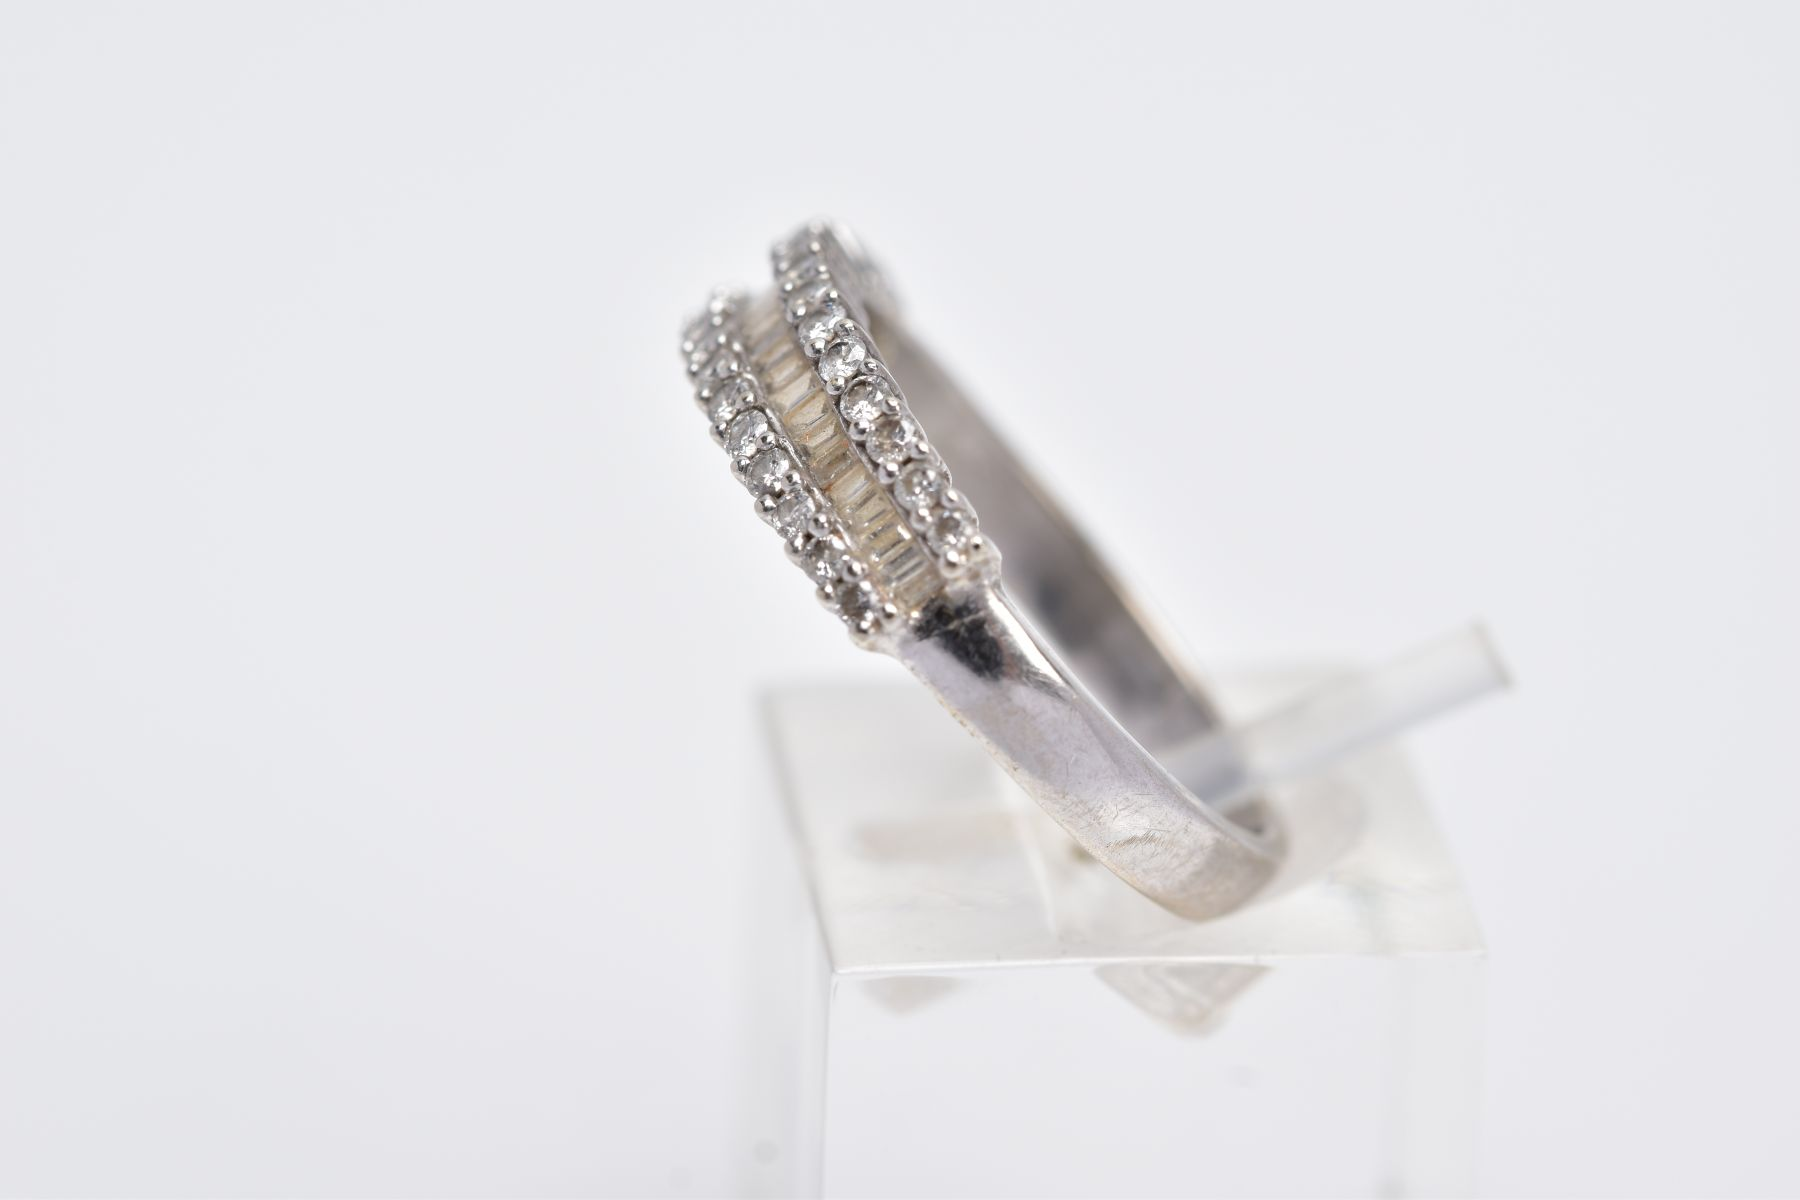 A 9CT WHITE GOLD HALFHOOP DIAMOND RING, designed with a central row of rectangular cut diamonds - Image 2 of 3